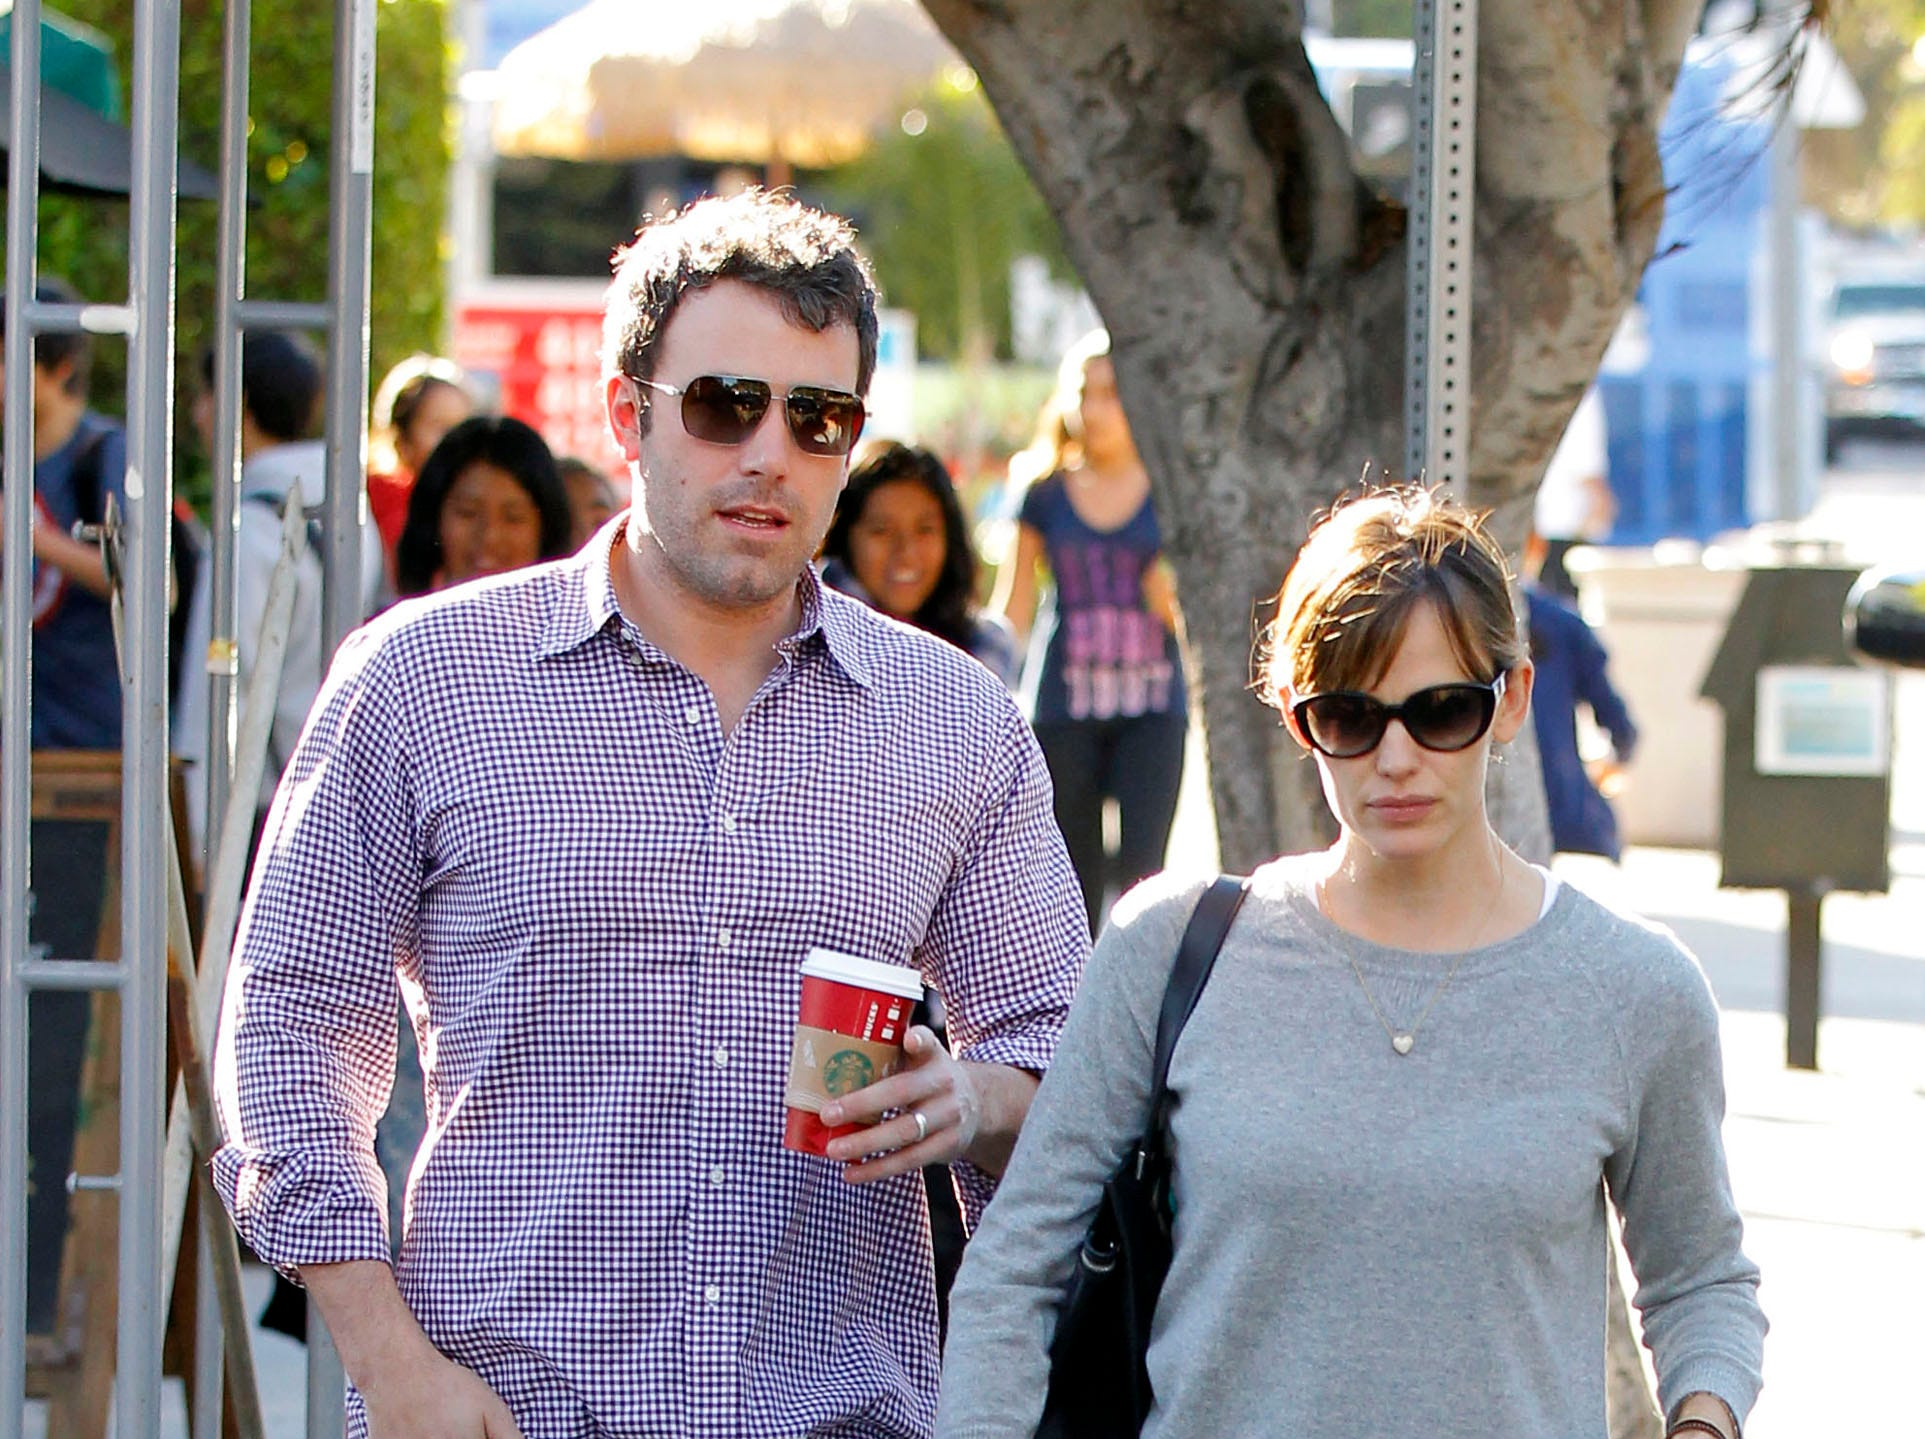 LOS ANGELES, CA - November 07: Ben Affleck and Jennifer Garner are seen on November 07, 2013 in Los Angeles, California.  (Photo by Bauer-Griffin/FilmMagic) ORG XMIT: 158817589 ORIG FILE ID: 187294383